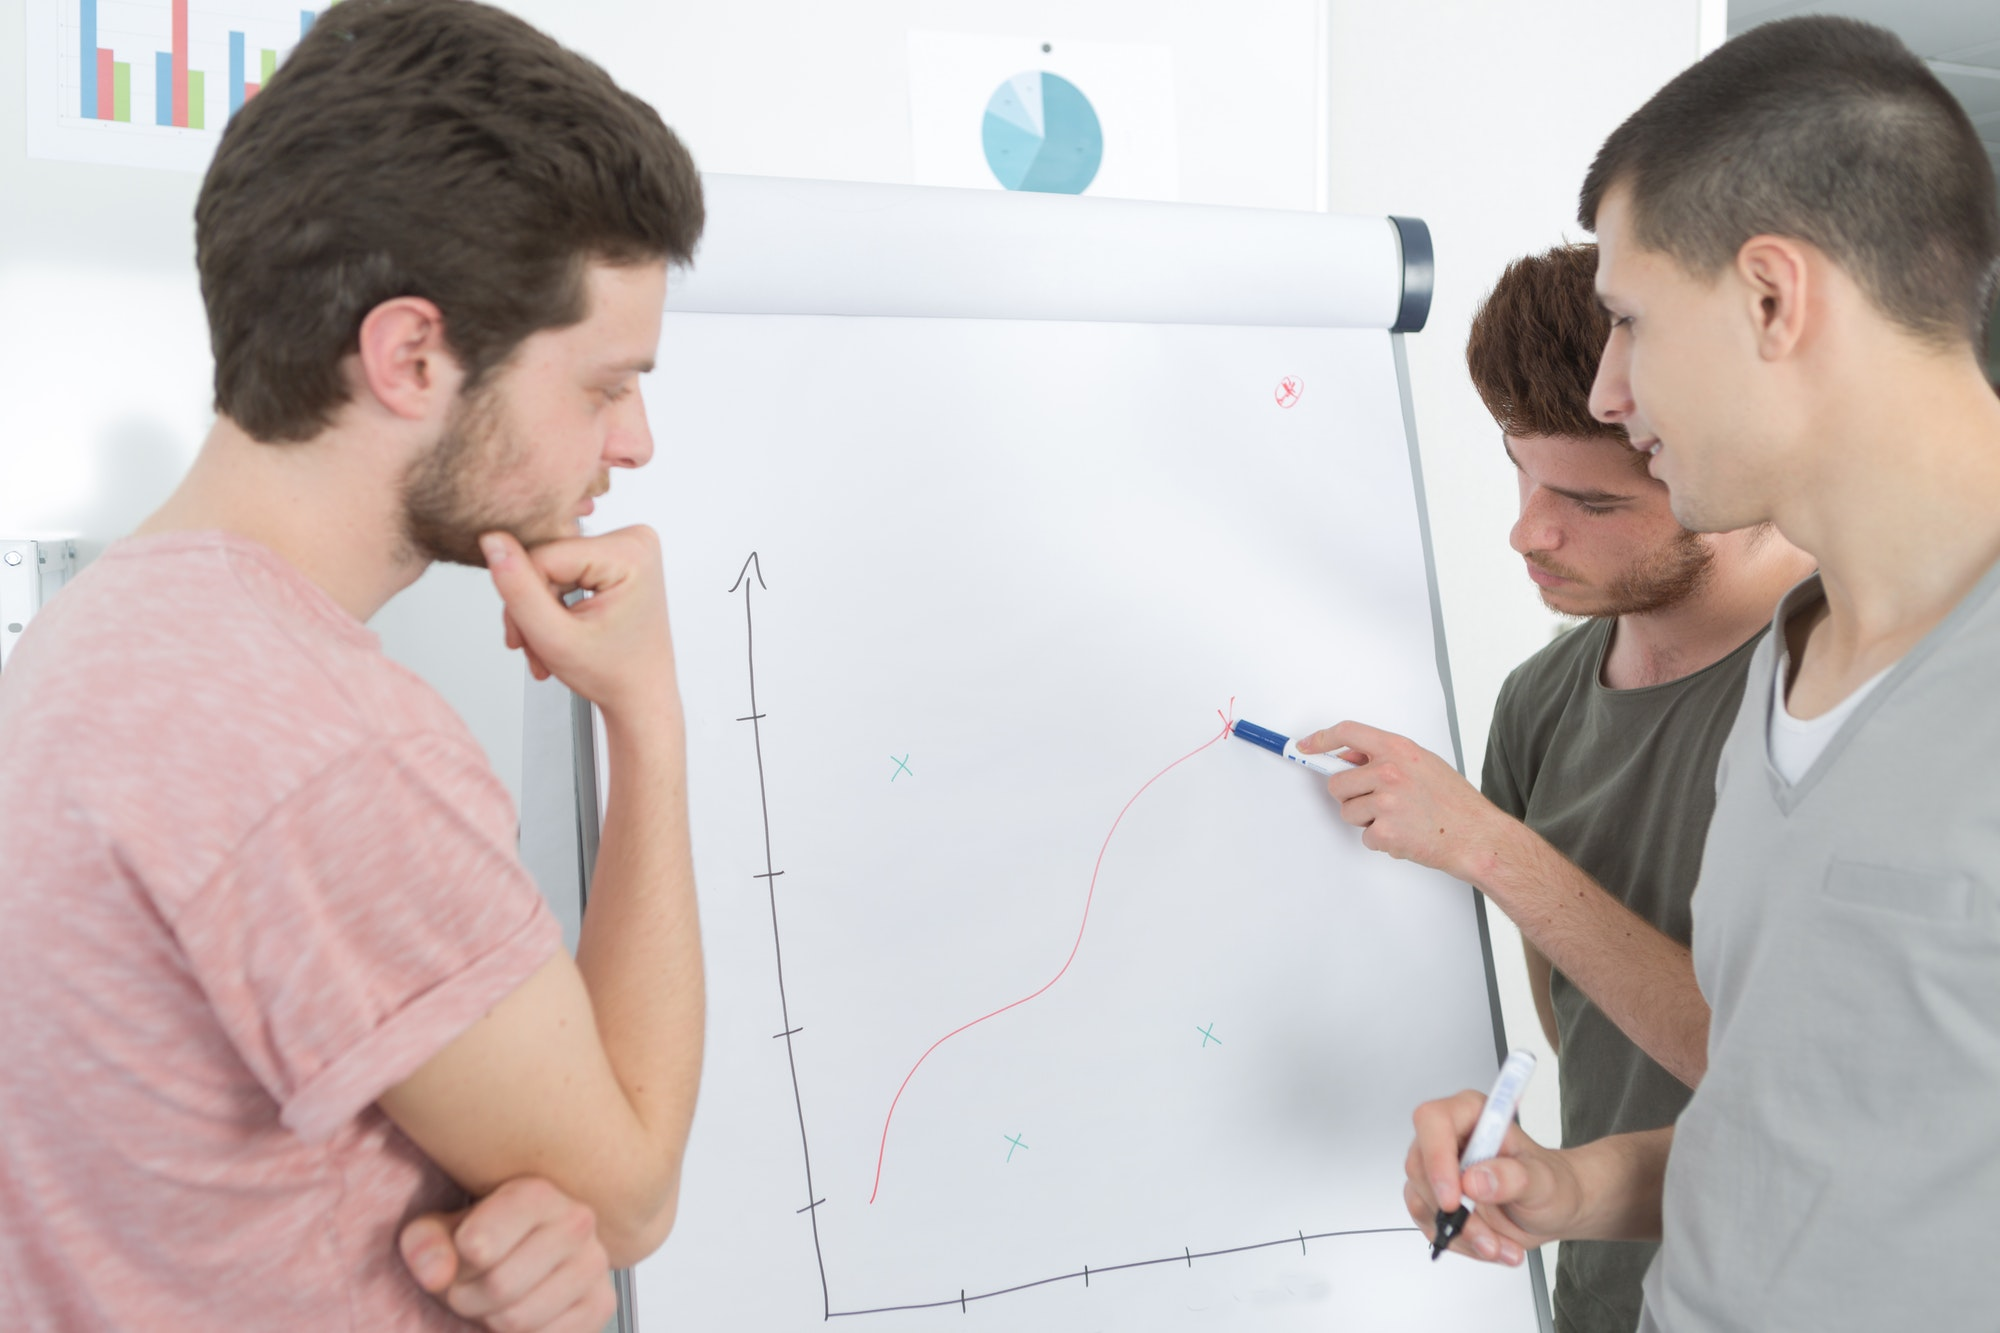 Young men tracing graph on flip chart